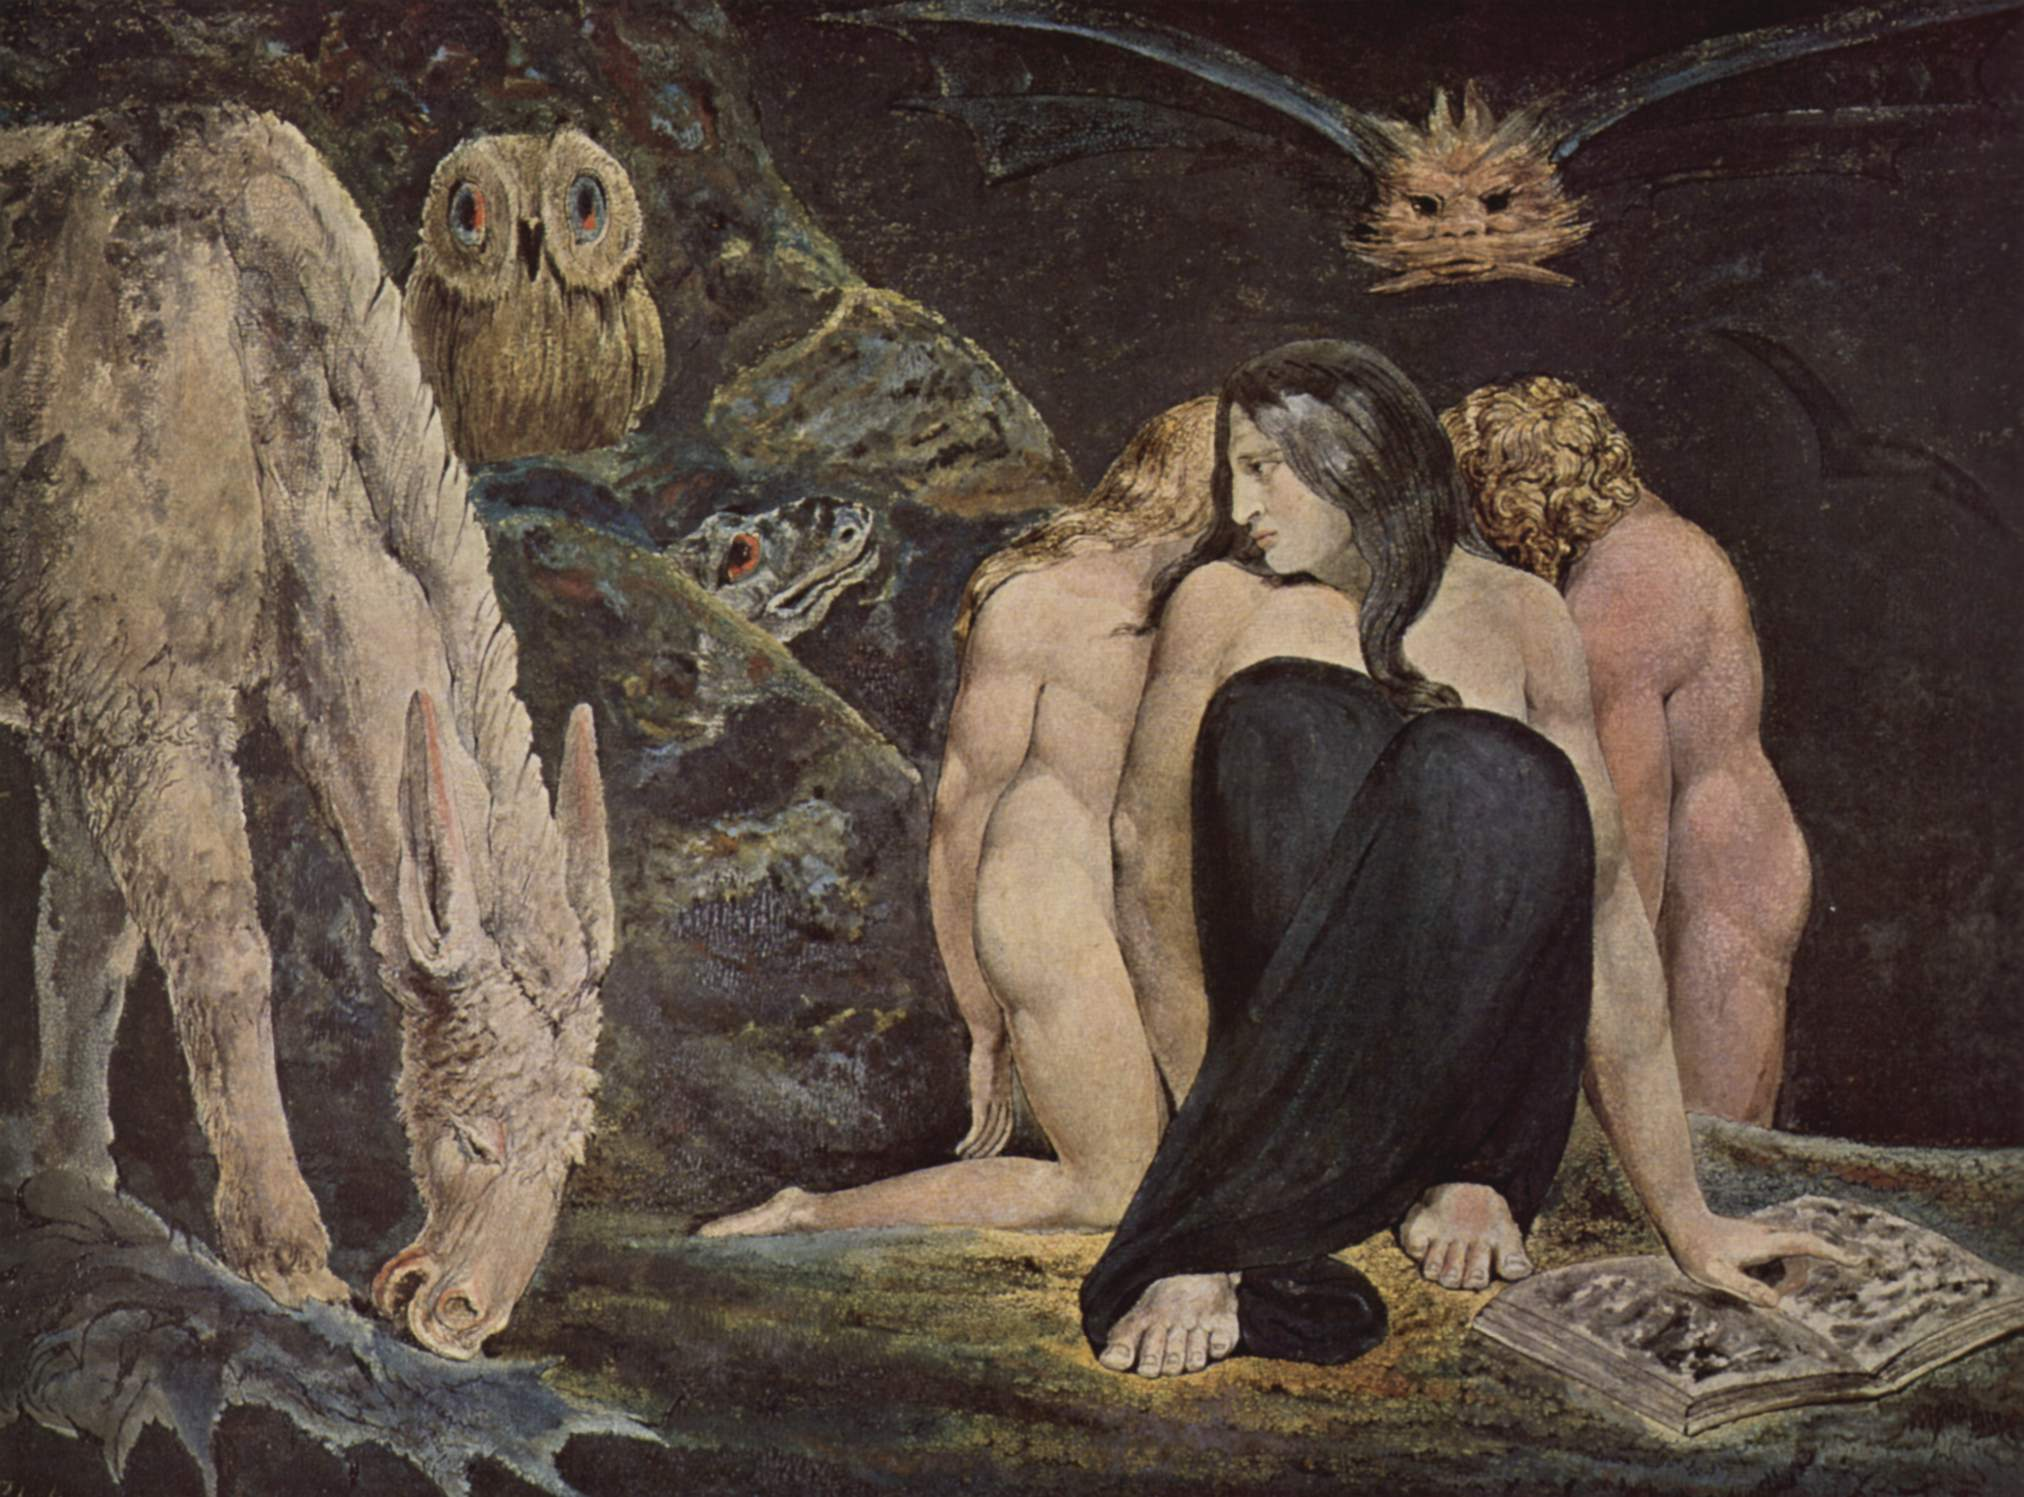 6. Hécate, William Blake, 1795